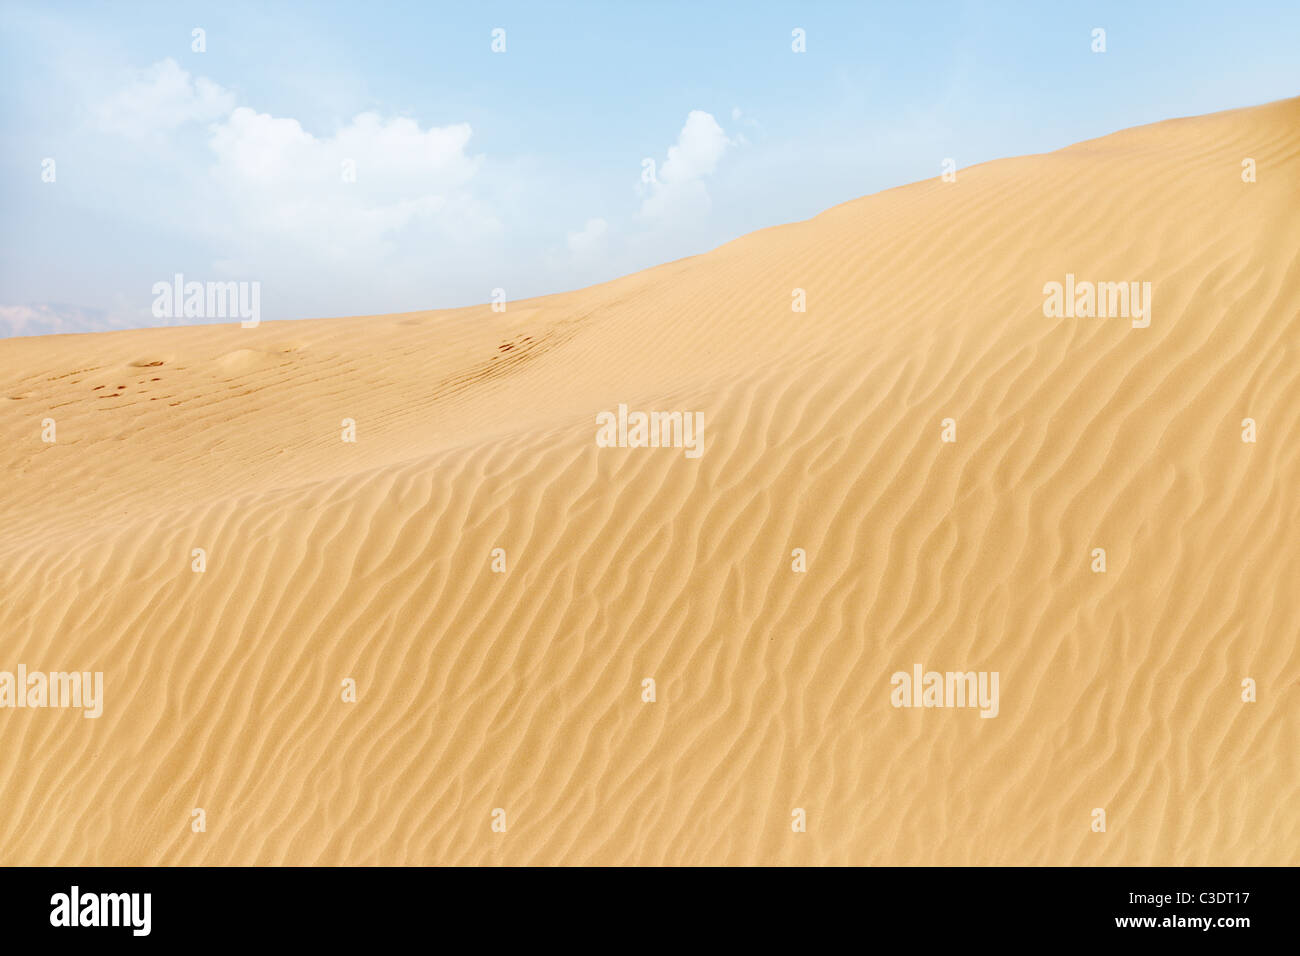 View on the rippled sand dunes in the desert. Natural light and colors Stock Photo